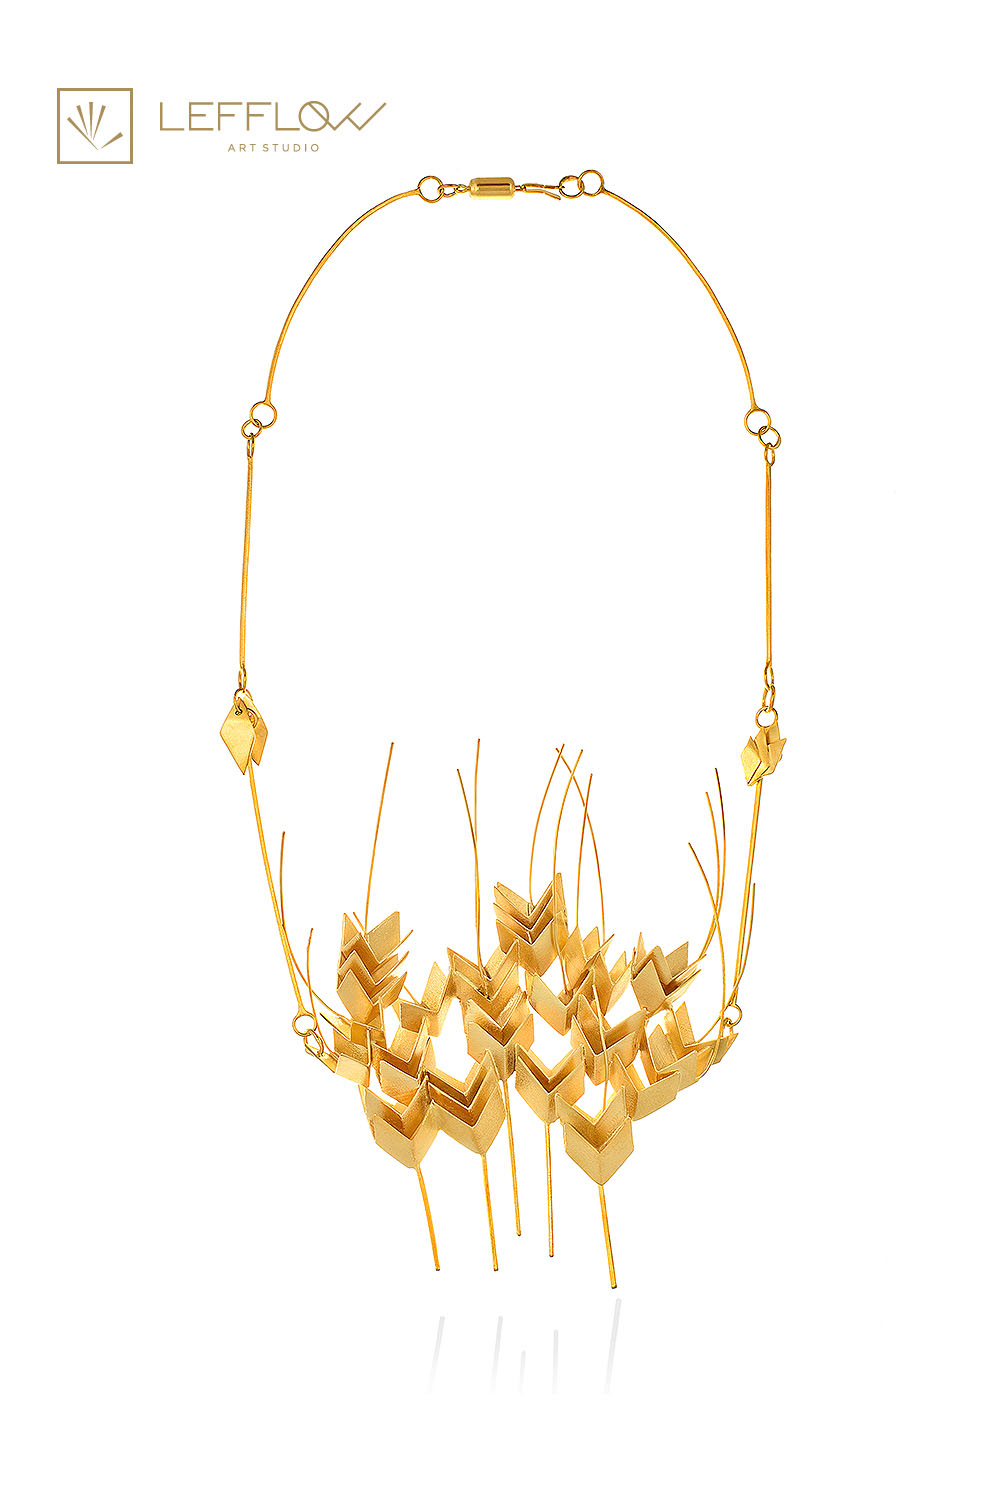 harvest necklace - lefflow jewelry